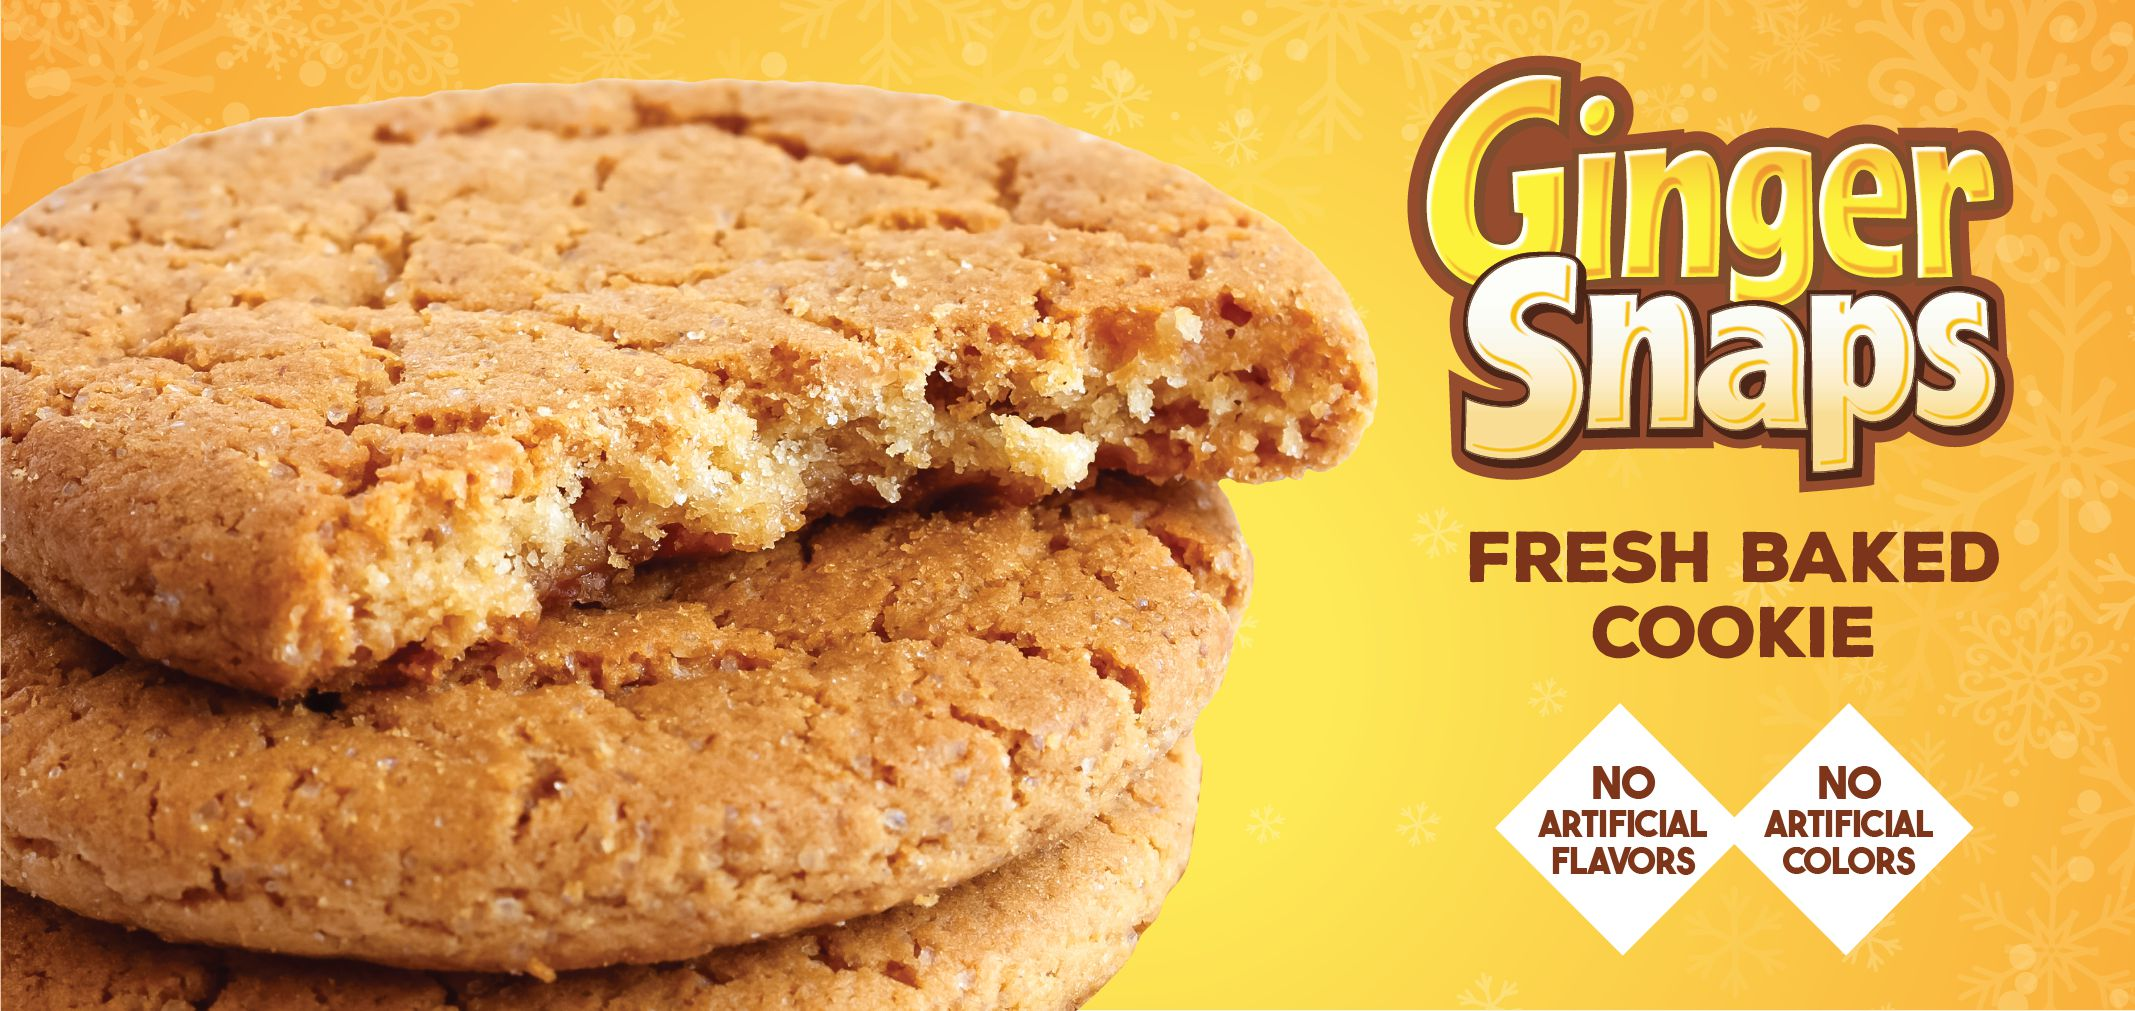 ginger snaps fresh baked cookie label image